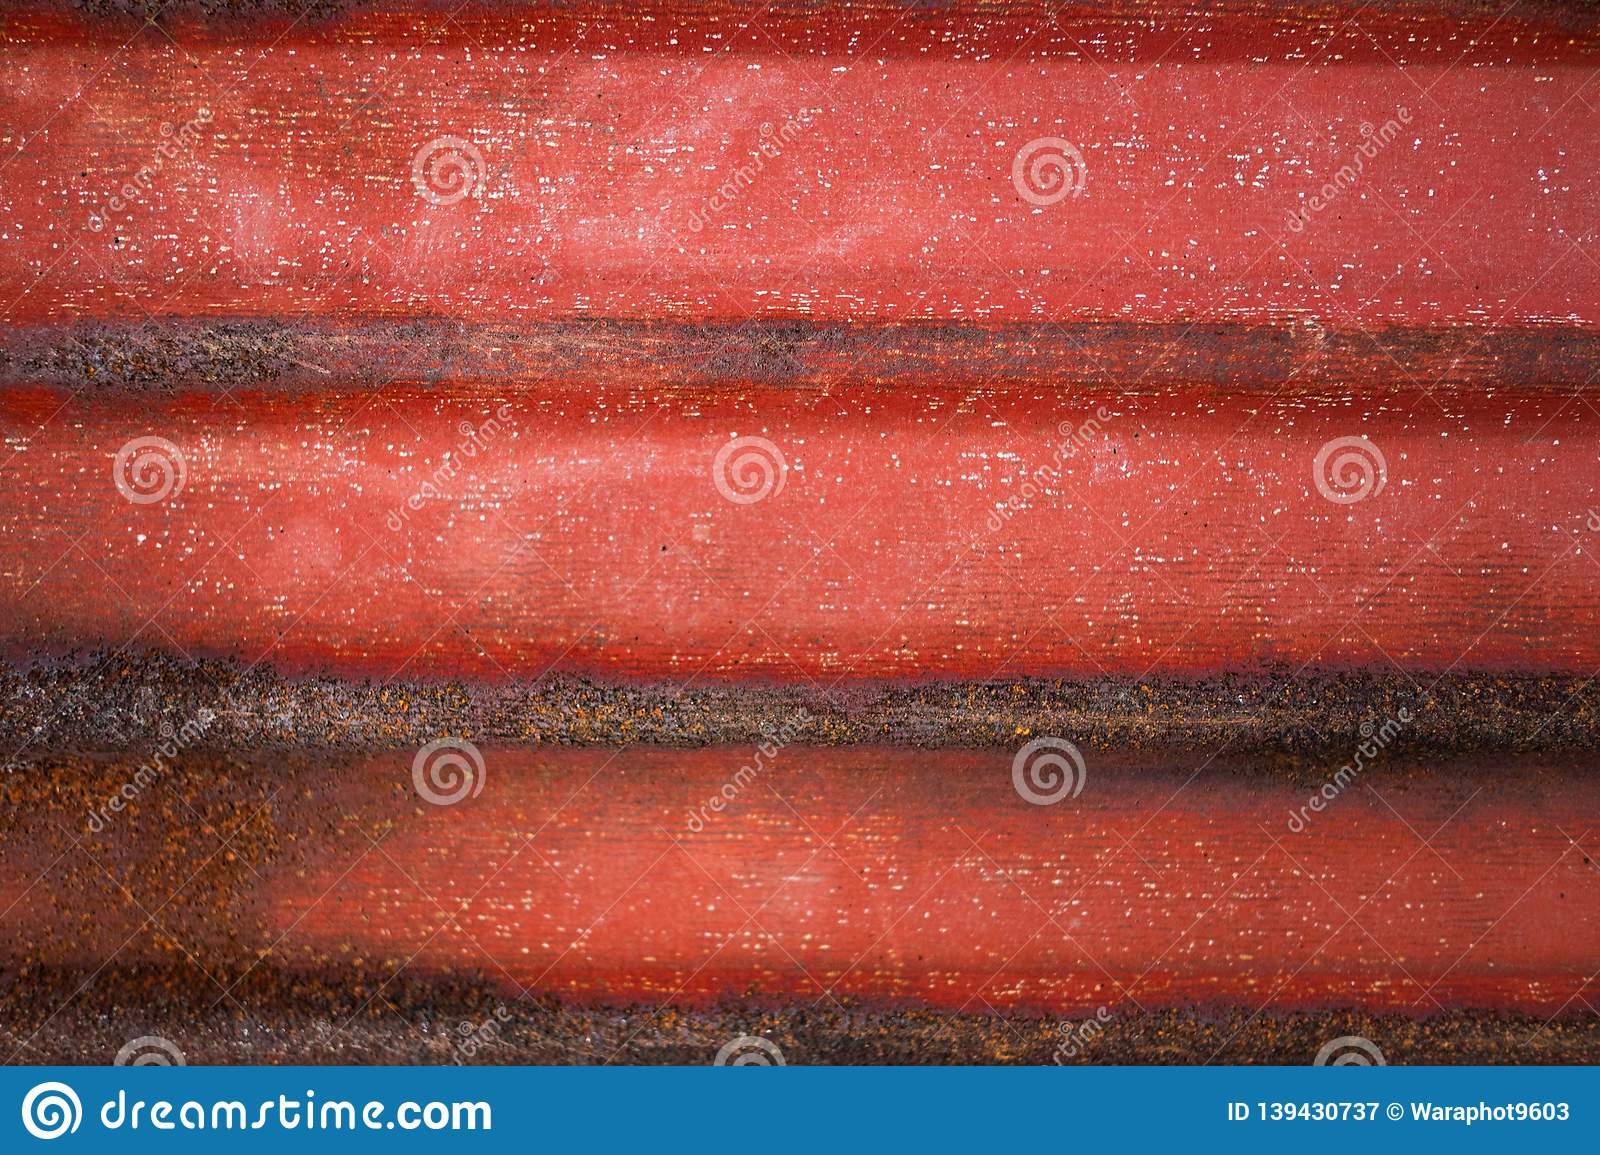 An old metal iron rusty background and texture